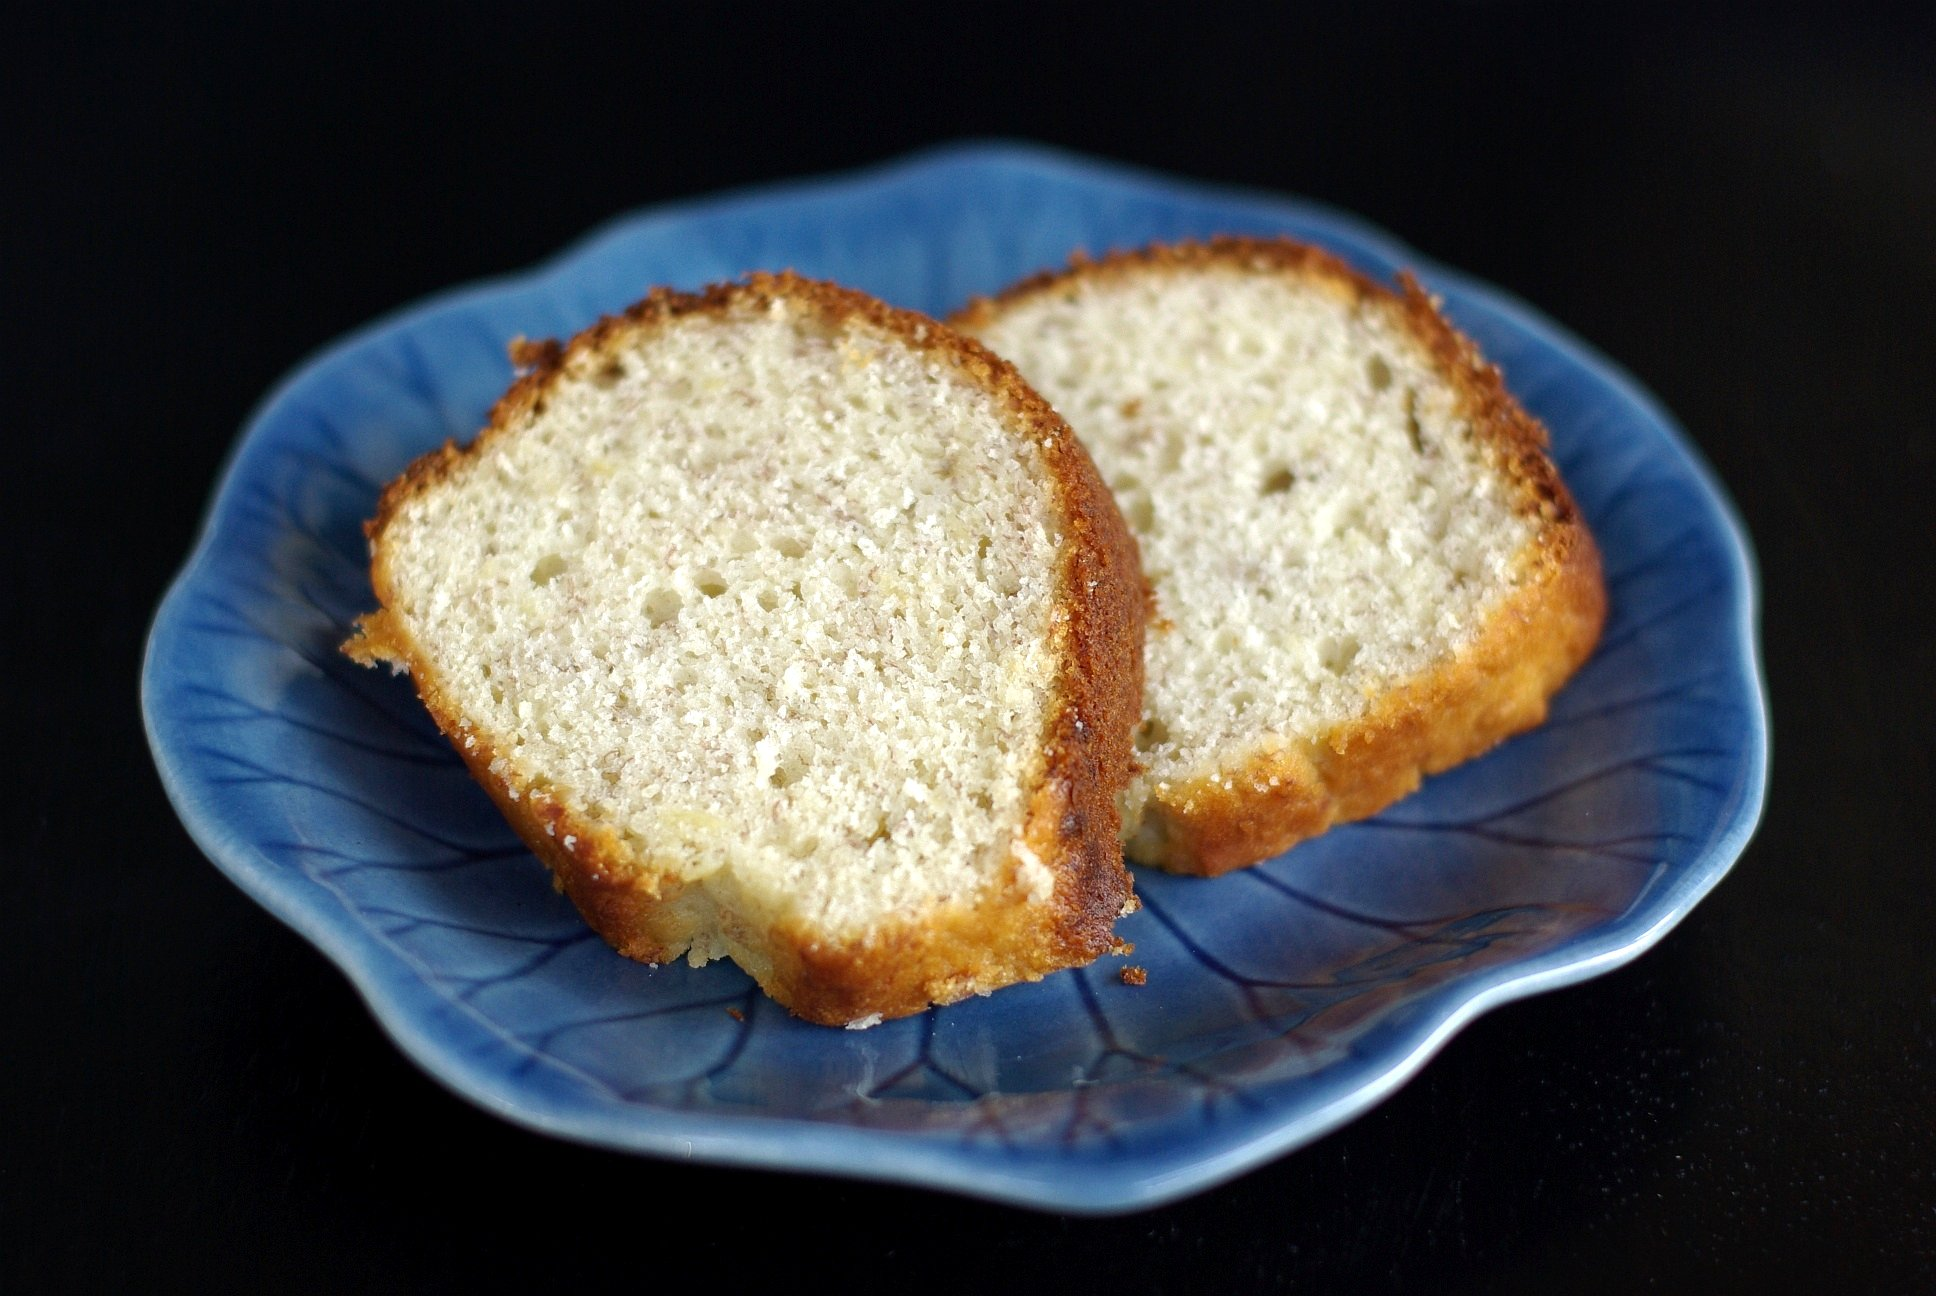 File:Two slices of banana bread on a blue plate, August ...